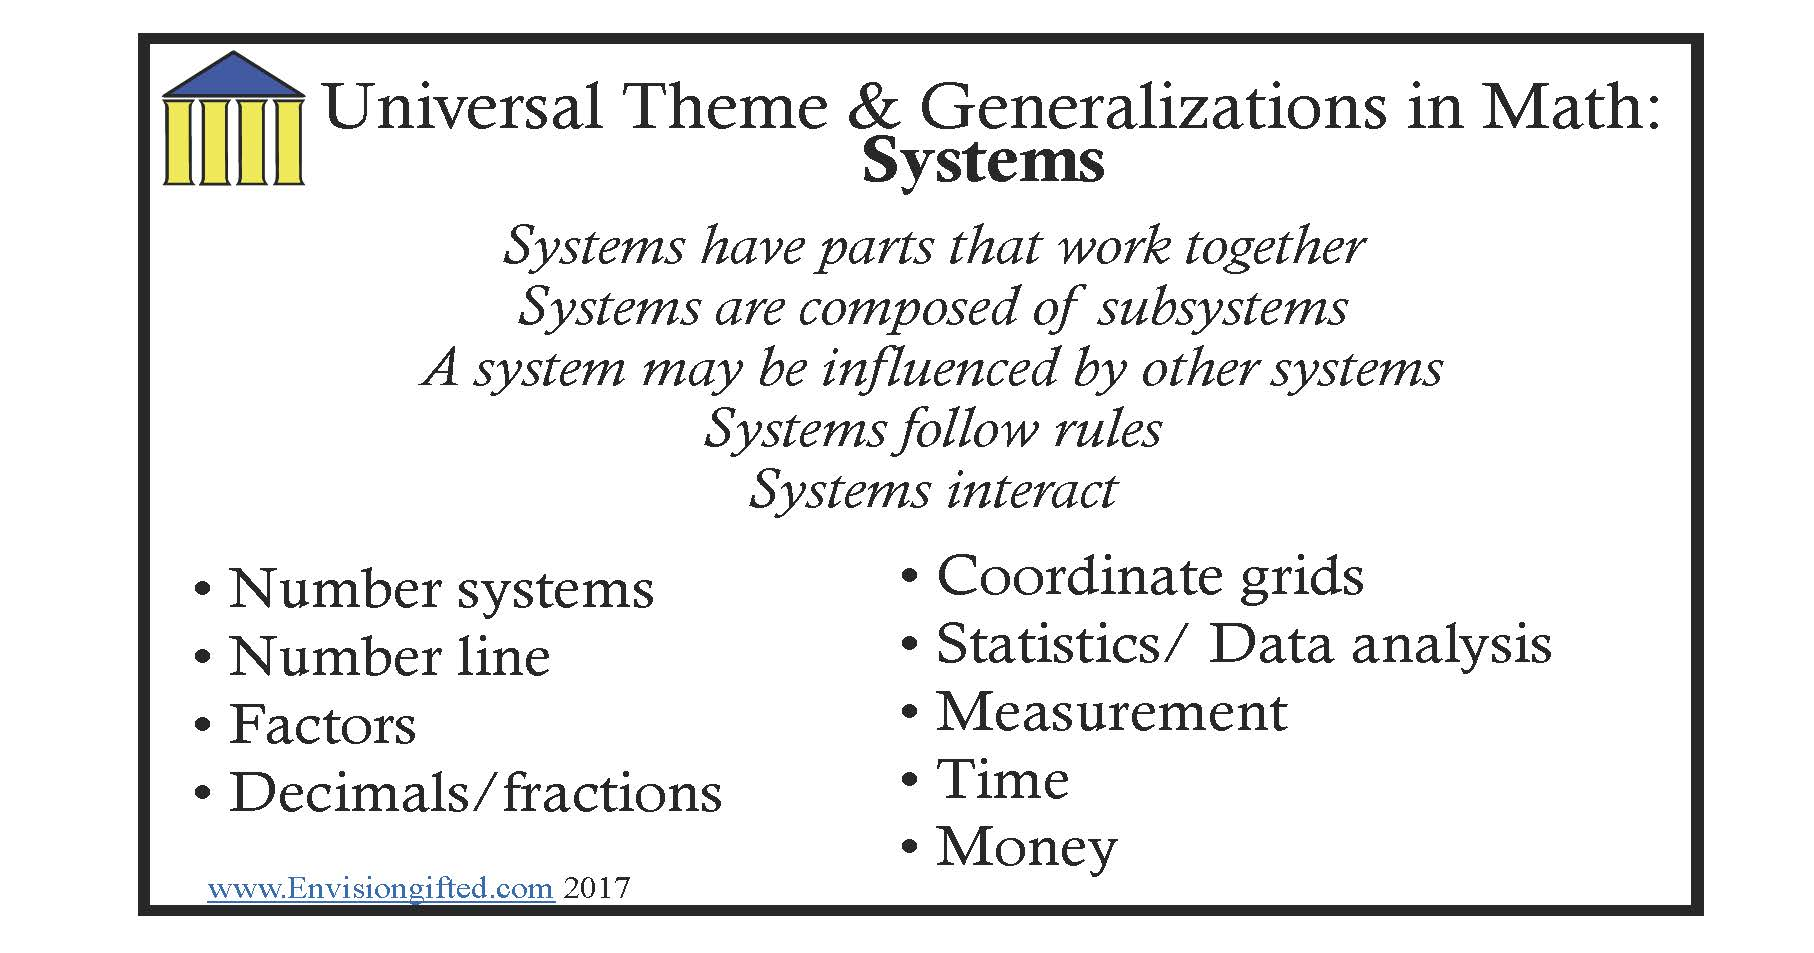 Envision Gifted. Universal Theme Systems Math